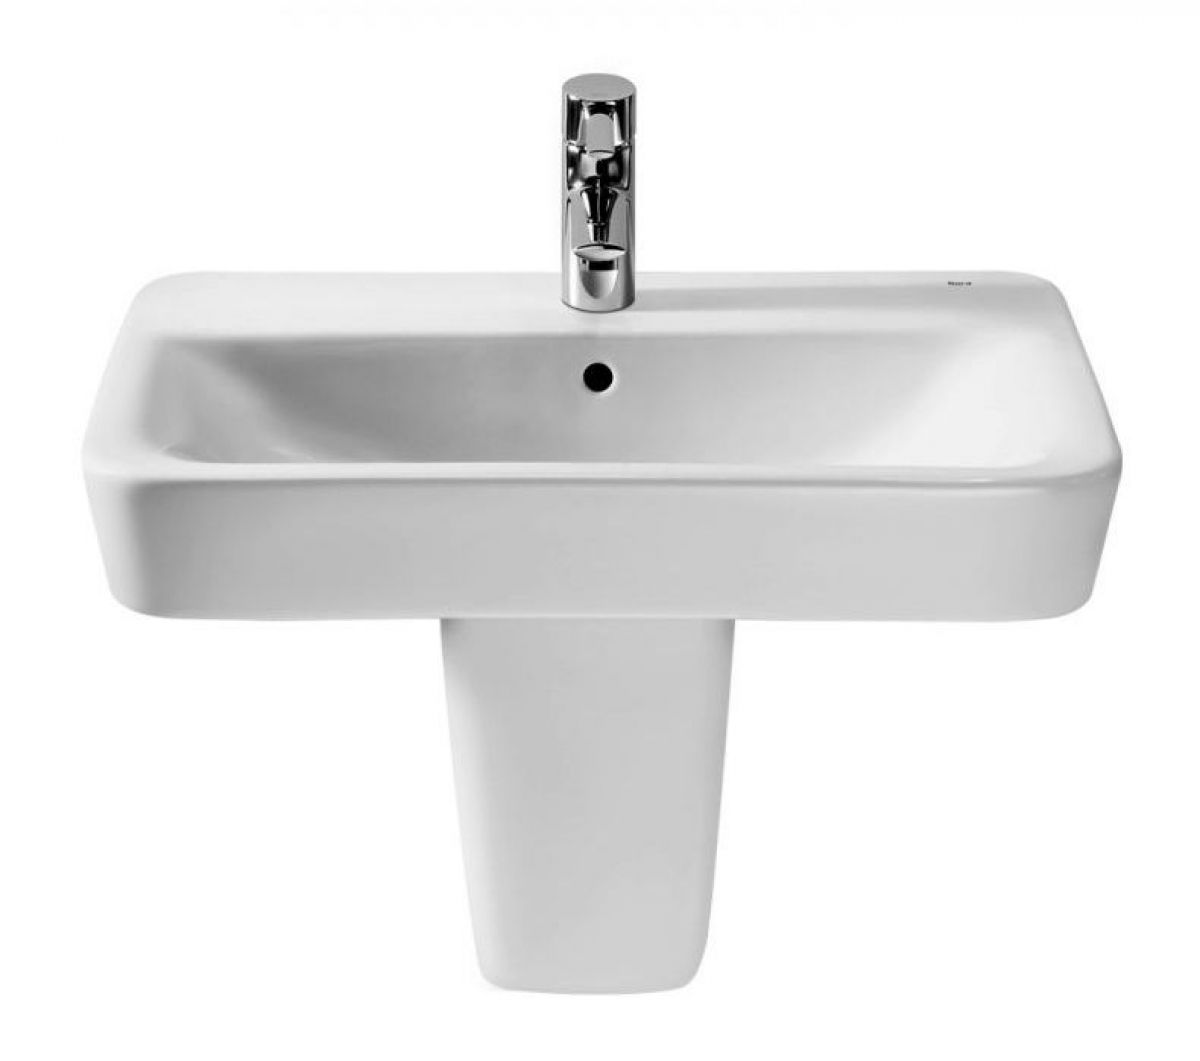 roca bathroom sinks roca senso square bathroom sink uk bathrooms 14235 | 64597